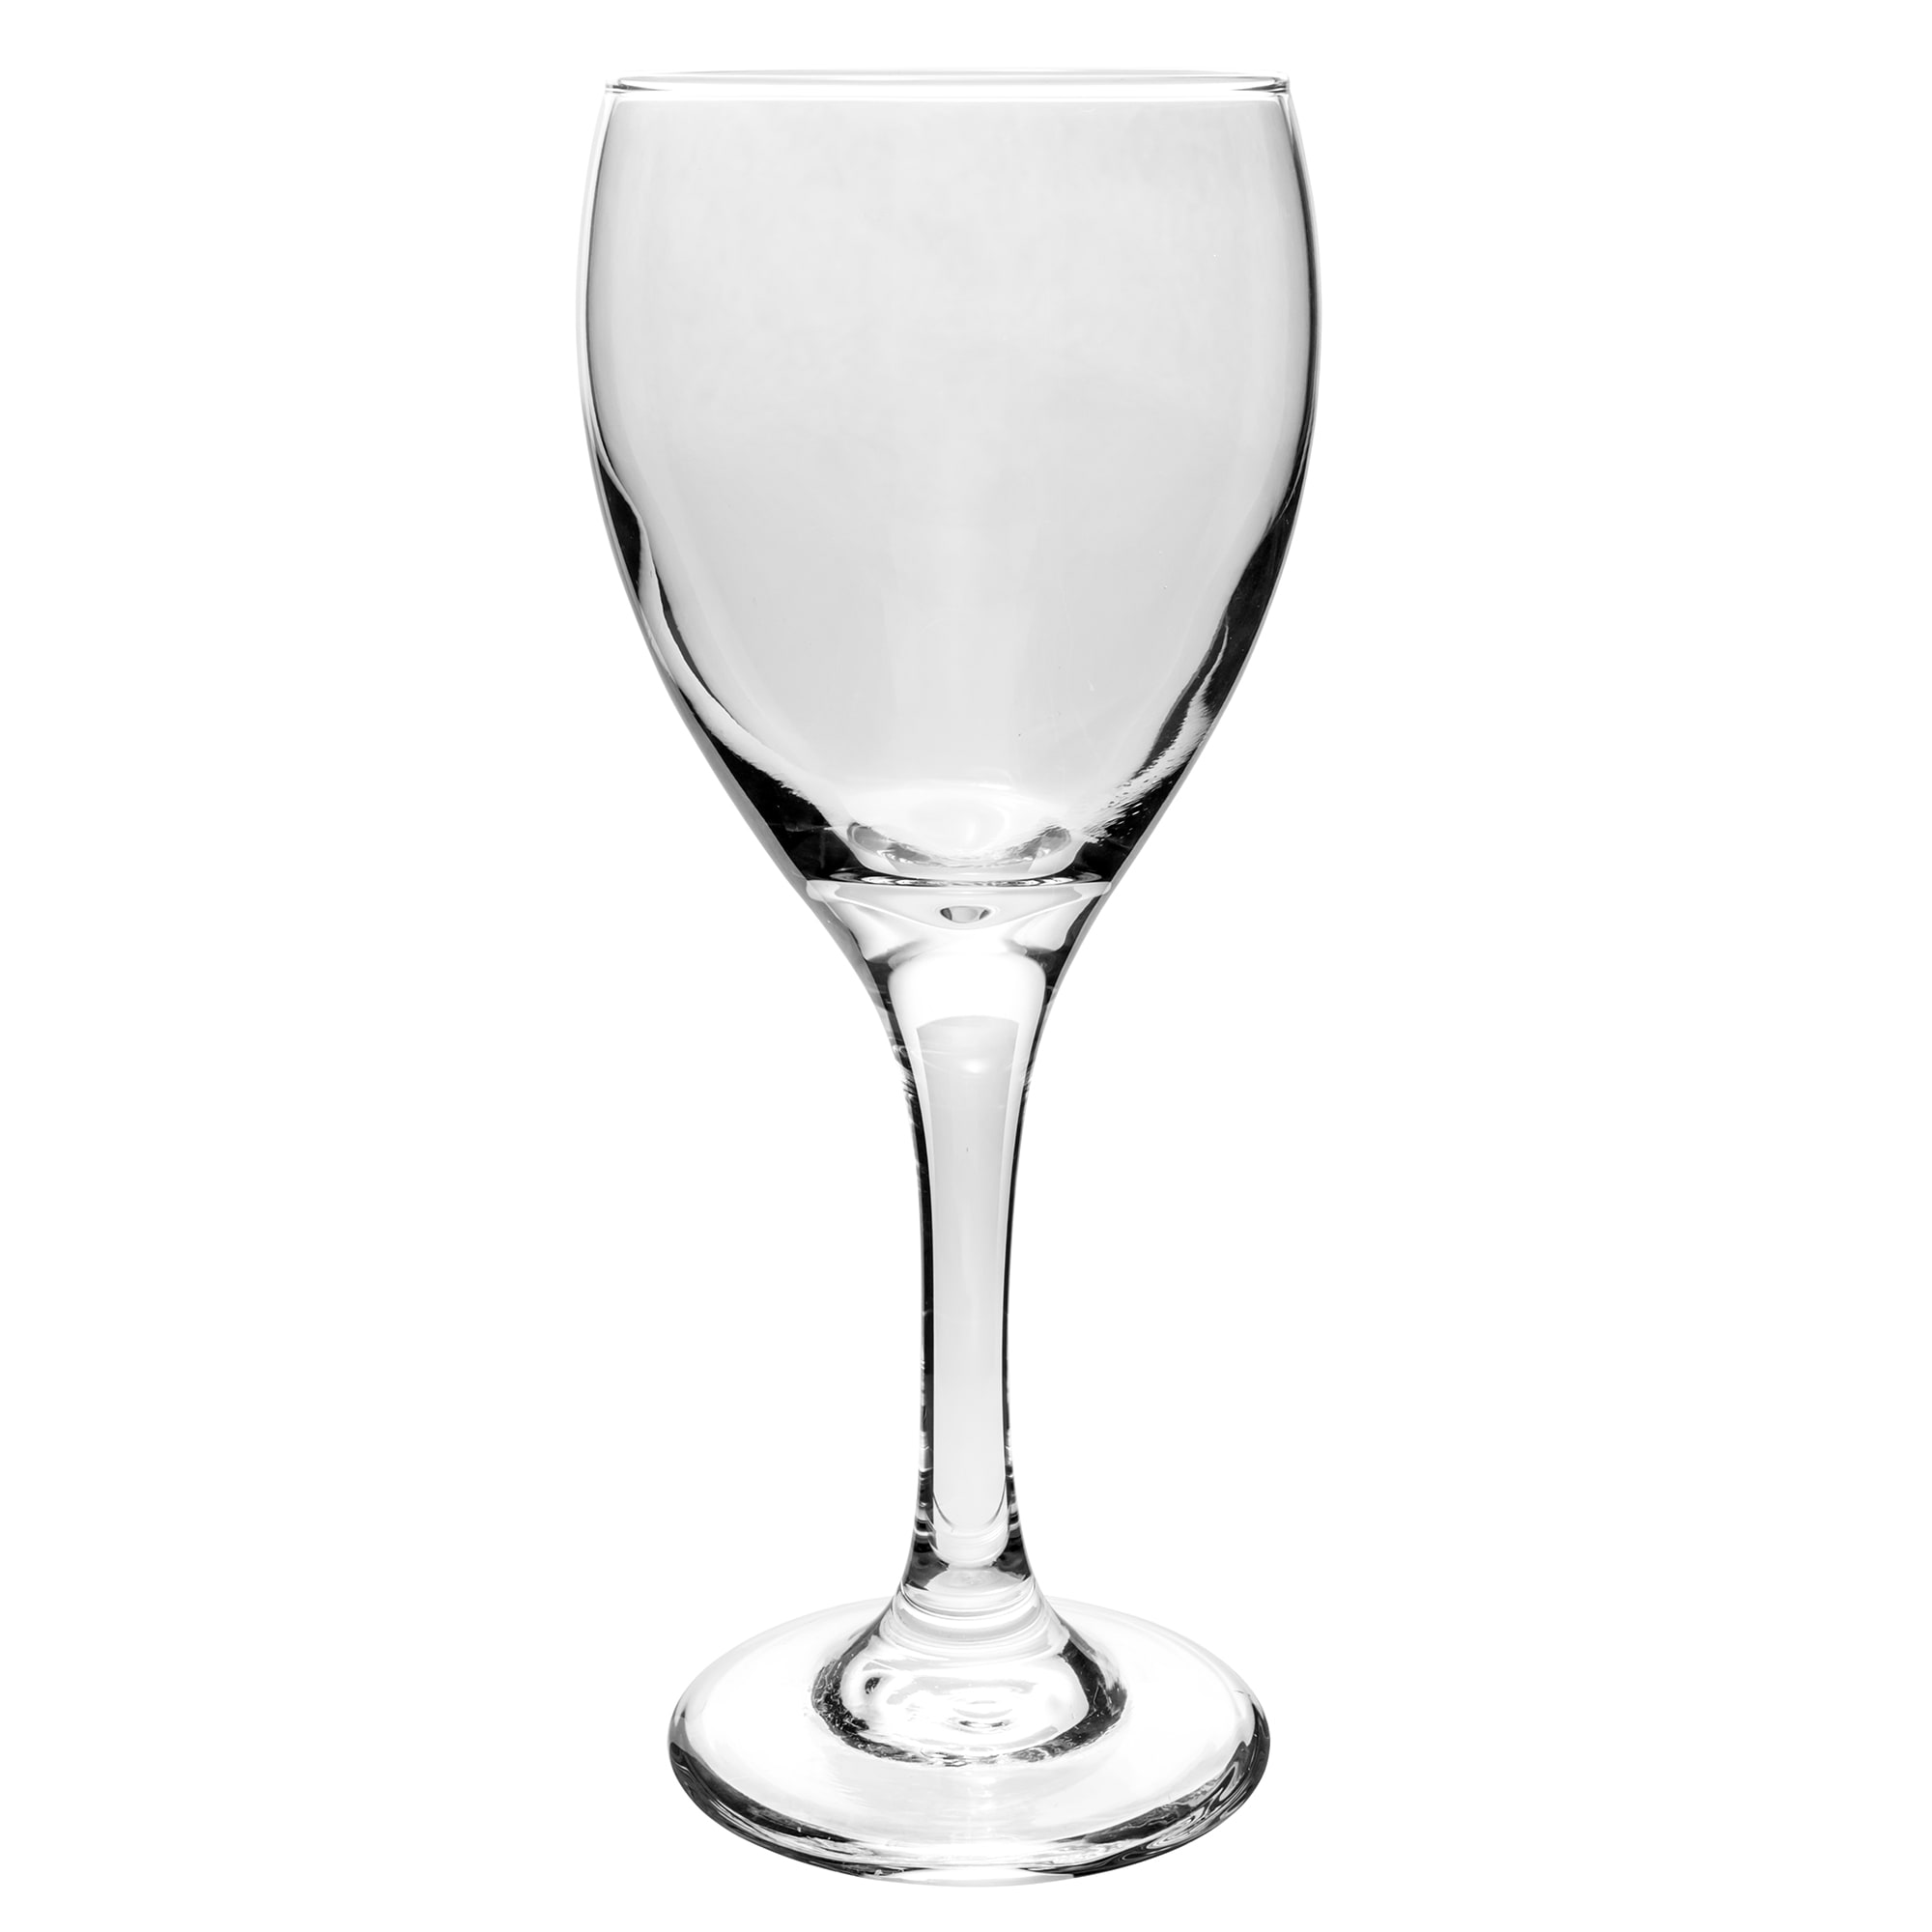 Libbey 3965 8.5 oz Teardrop White Wine Glass - Safedge Rim & Foot Guarantee